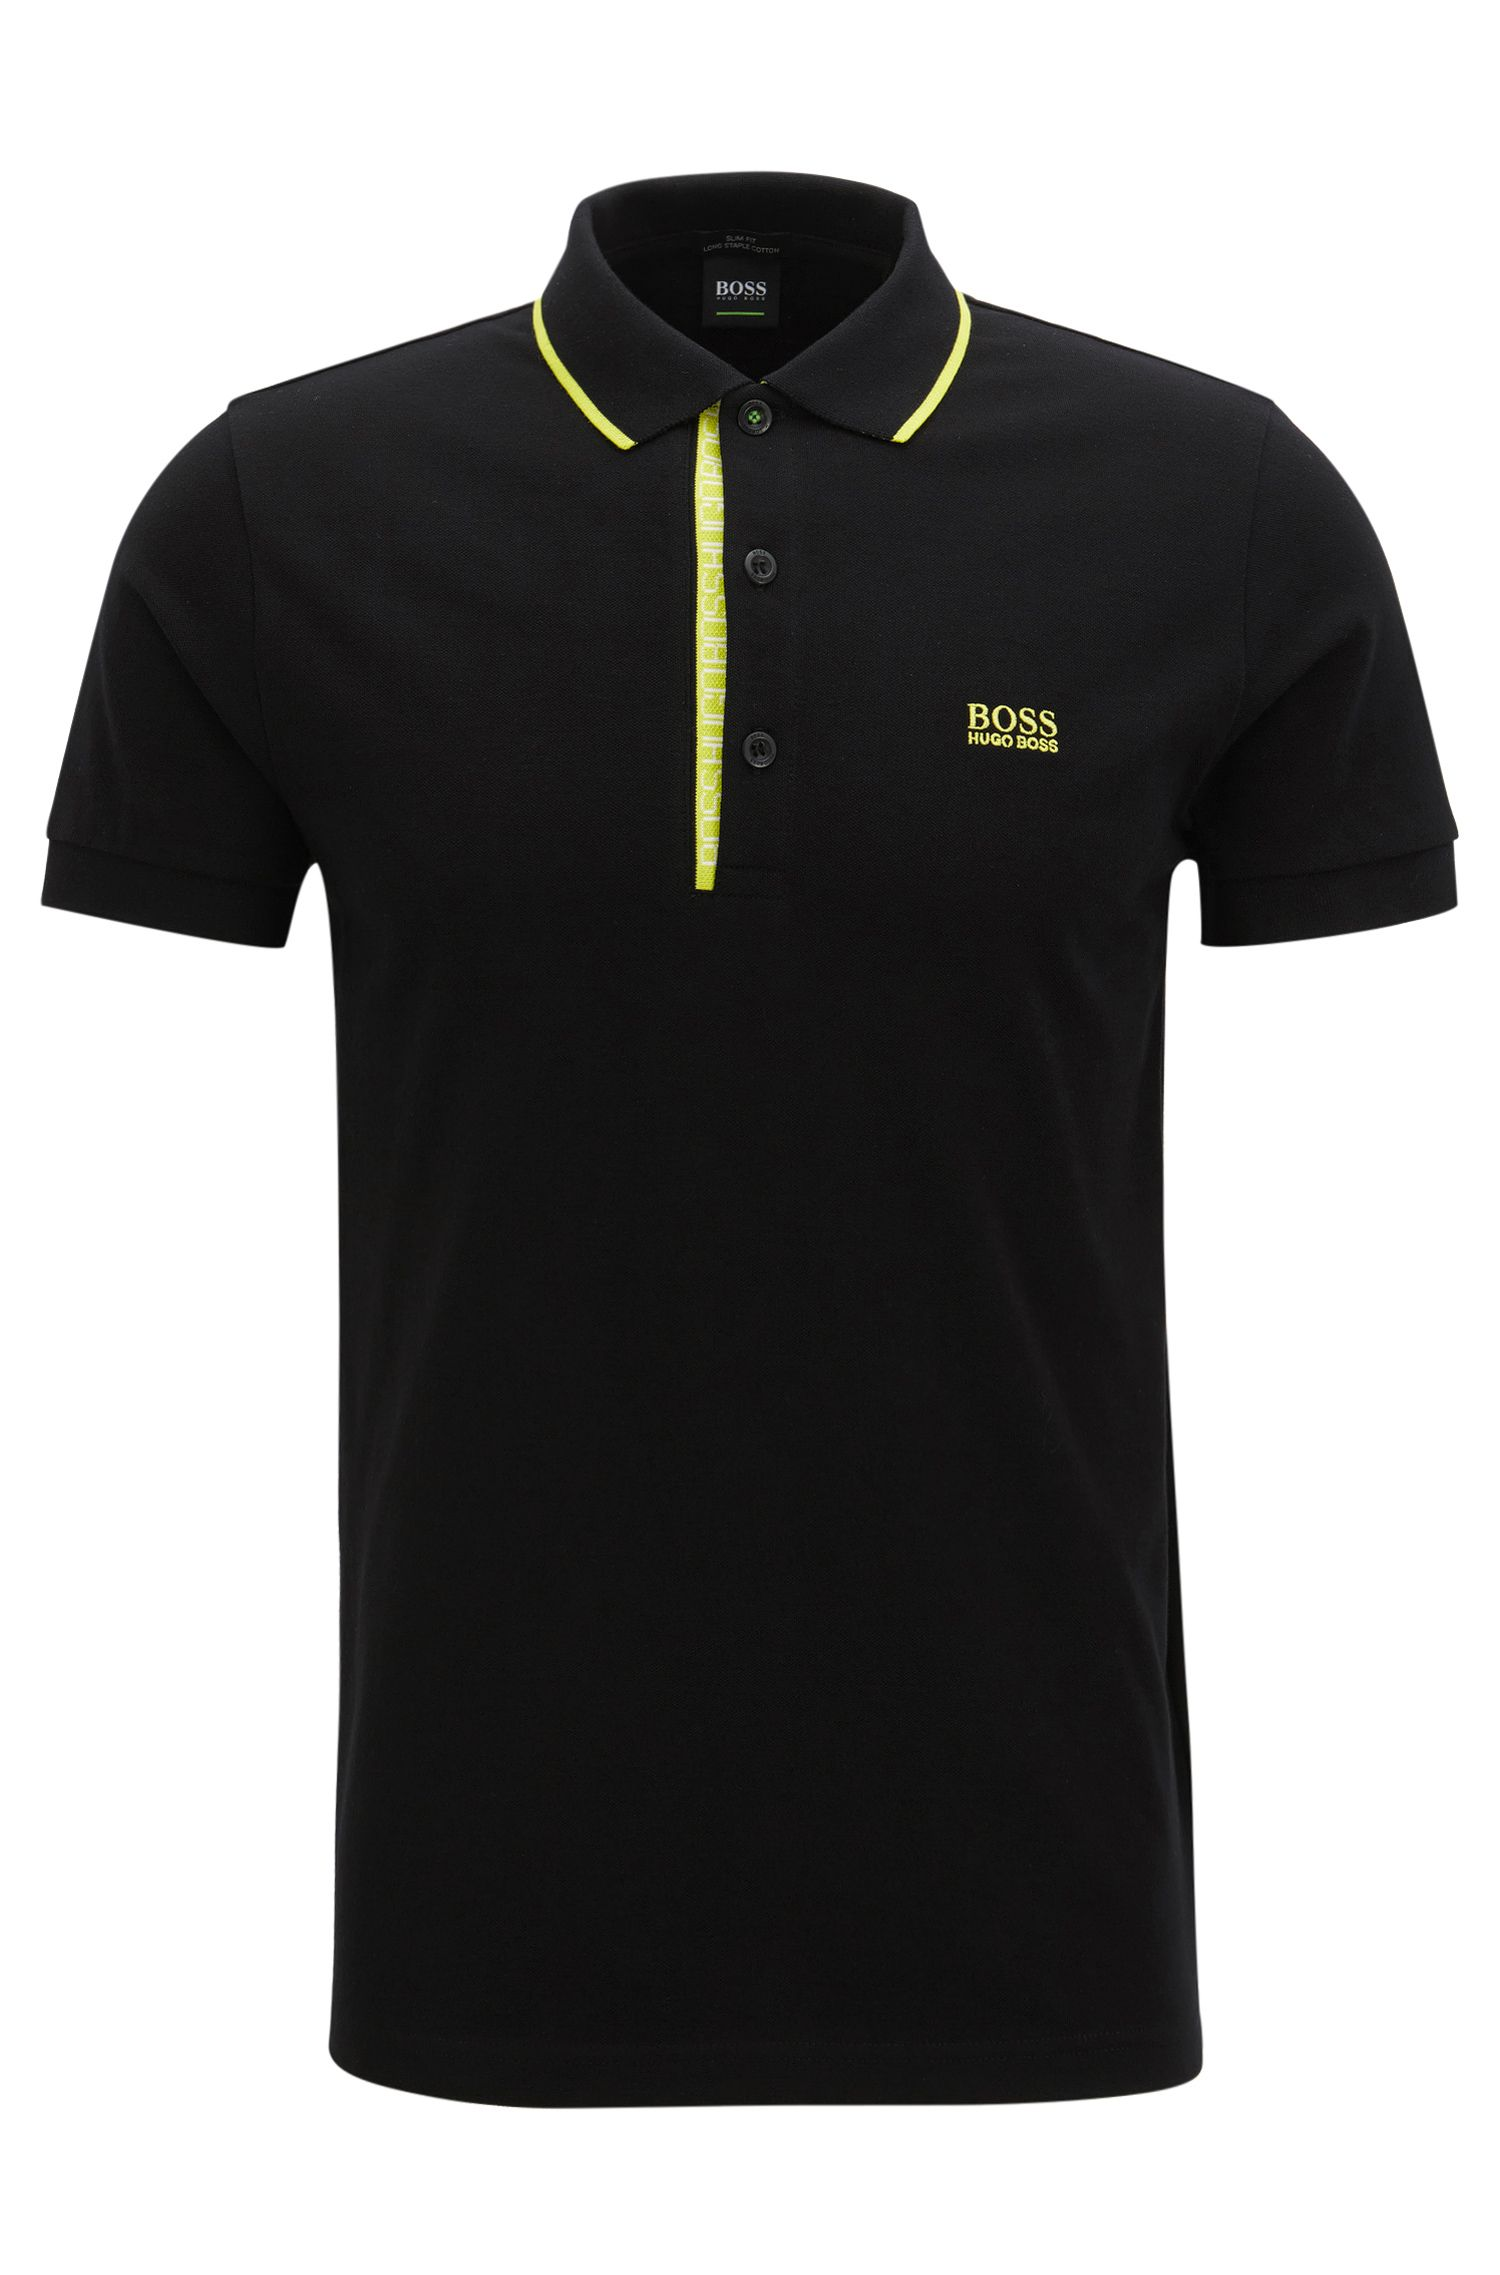 Oxfotd Cotton Polo Shirt, Slim Fit | Paule